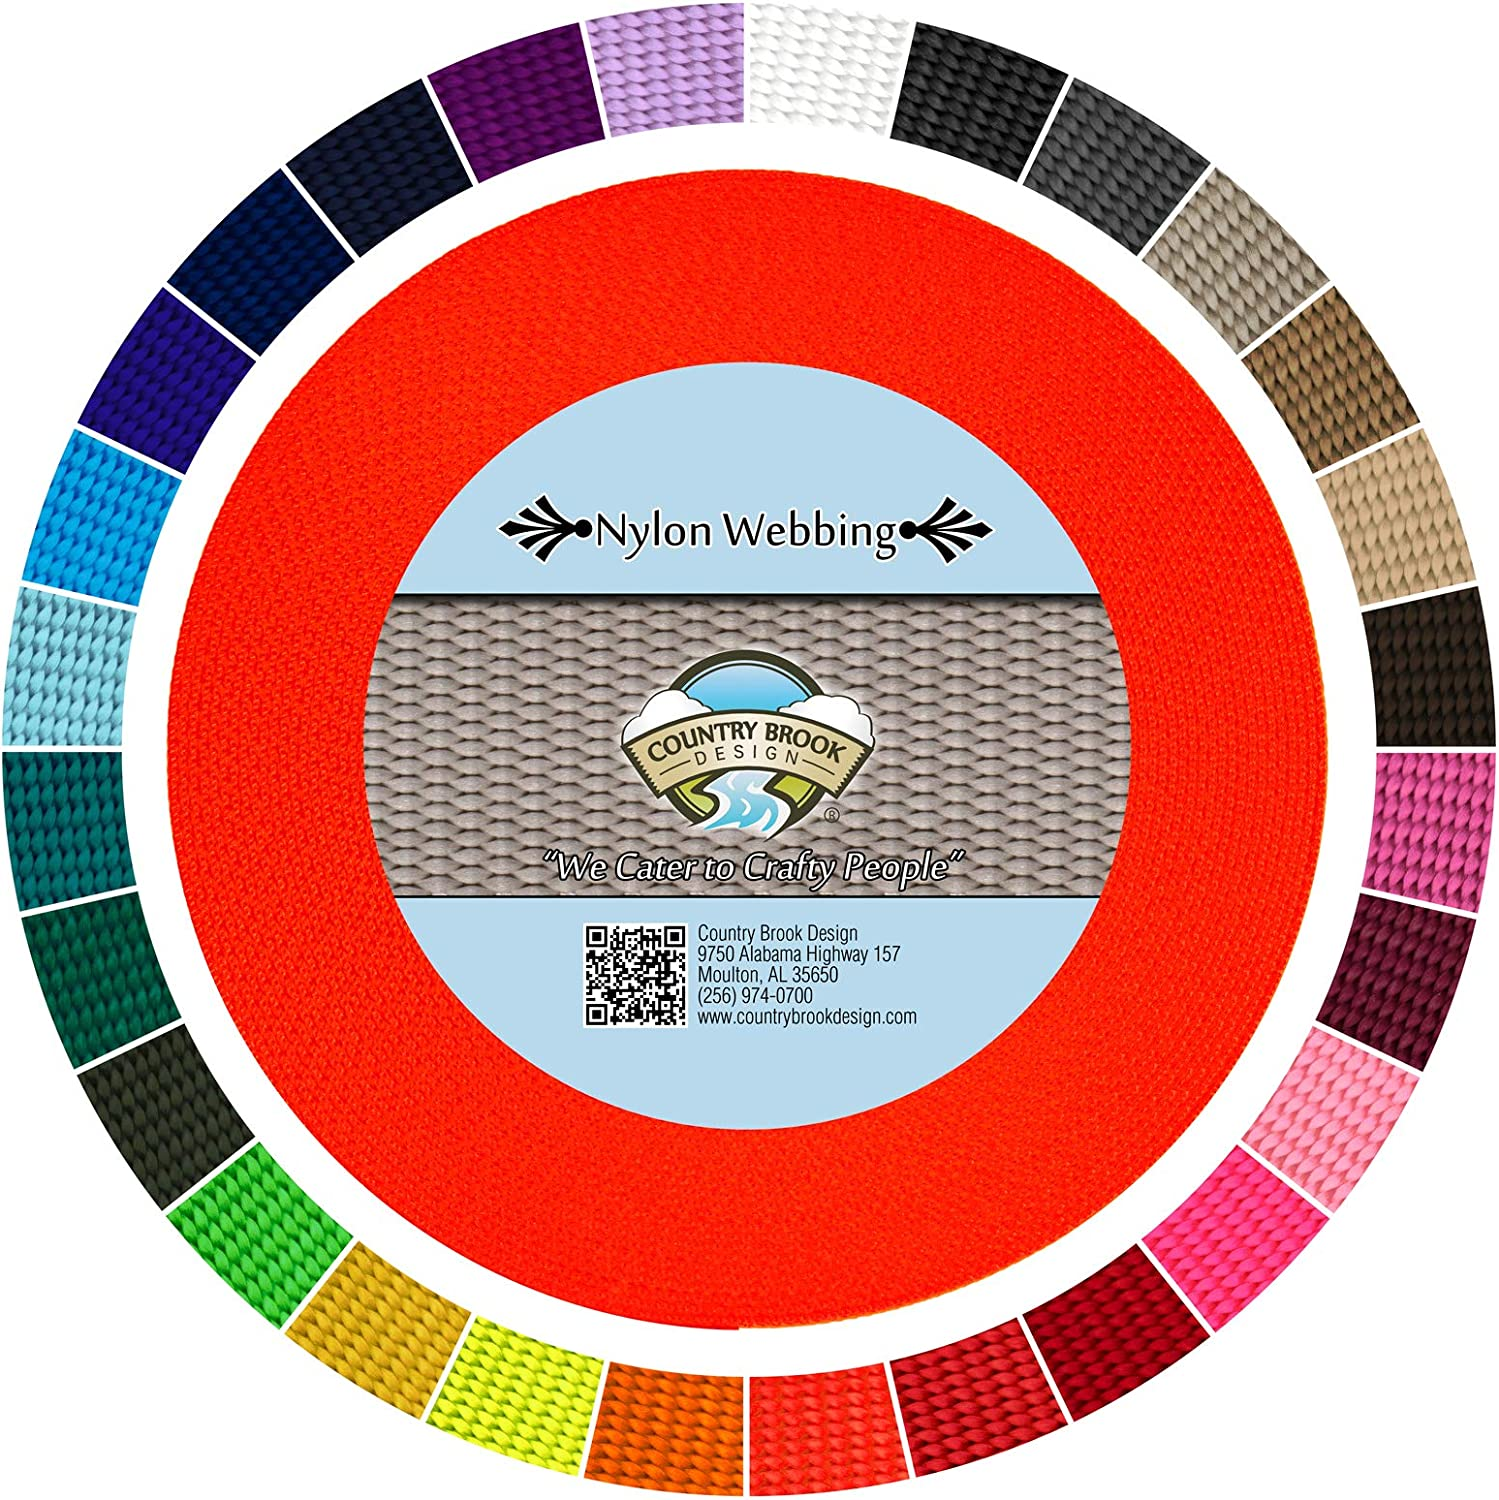 Country Brook Design - Durable 5 30 8 Webbing Heavy Nylon Max 72% Max 79% OFF OFF Inch